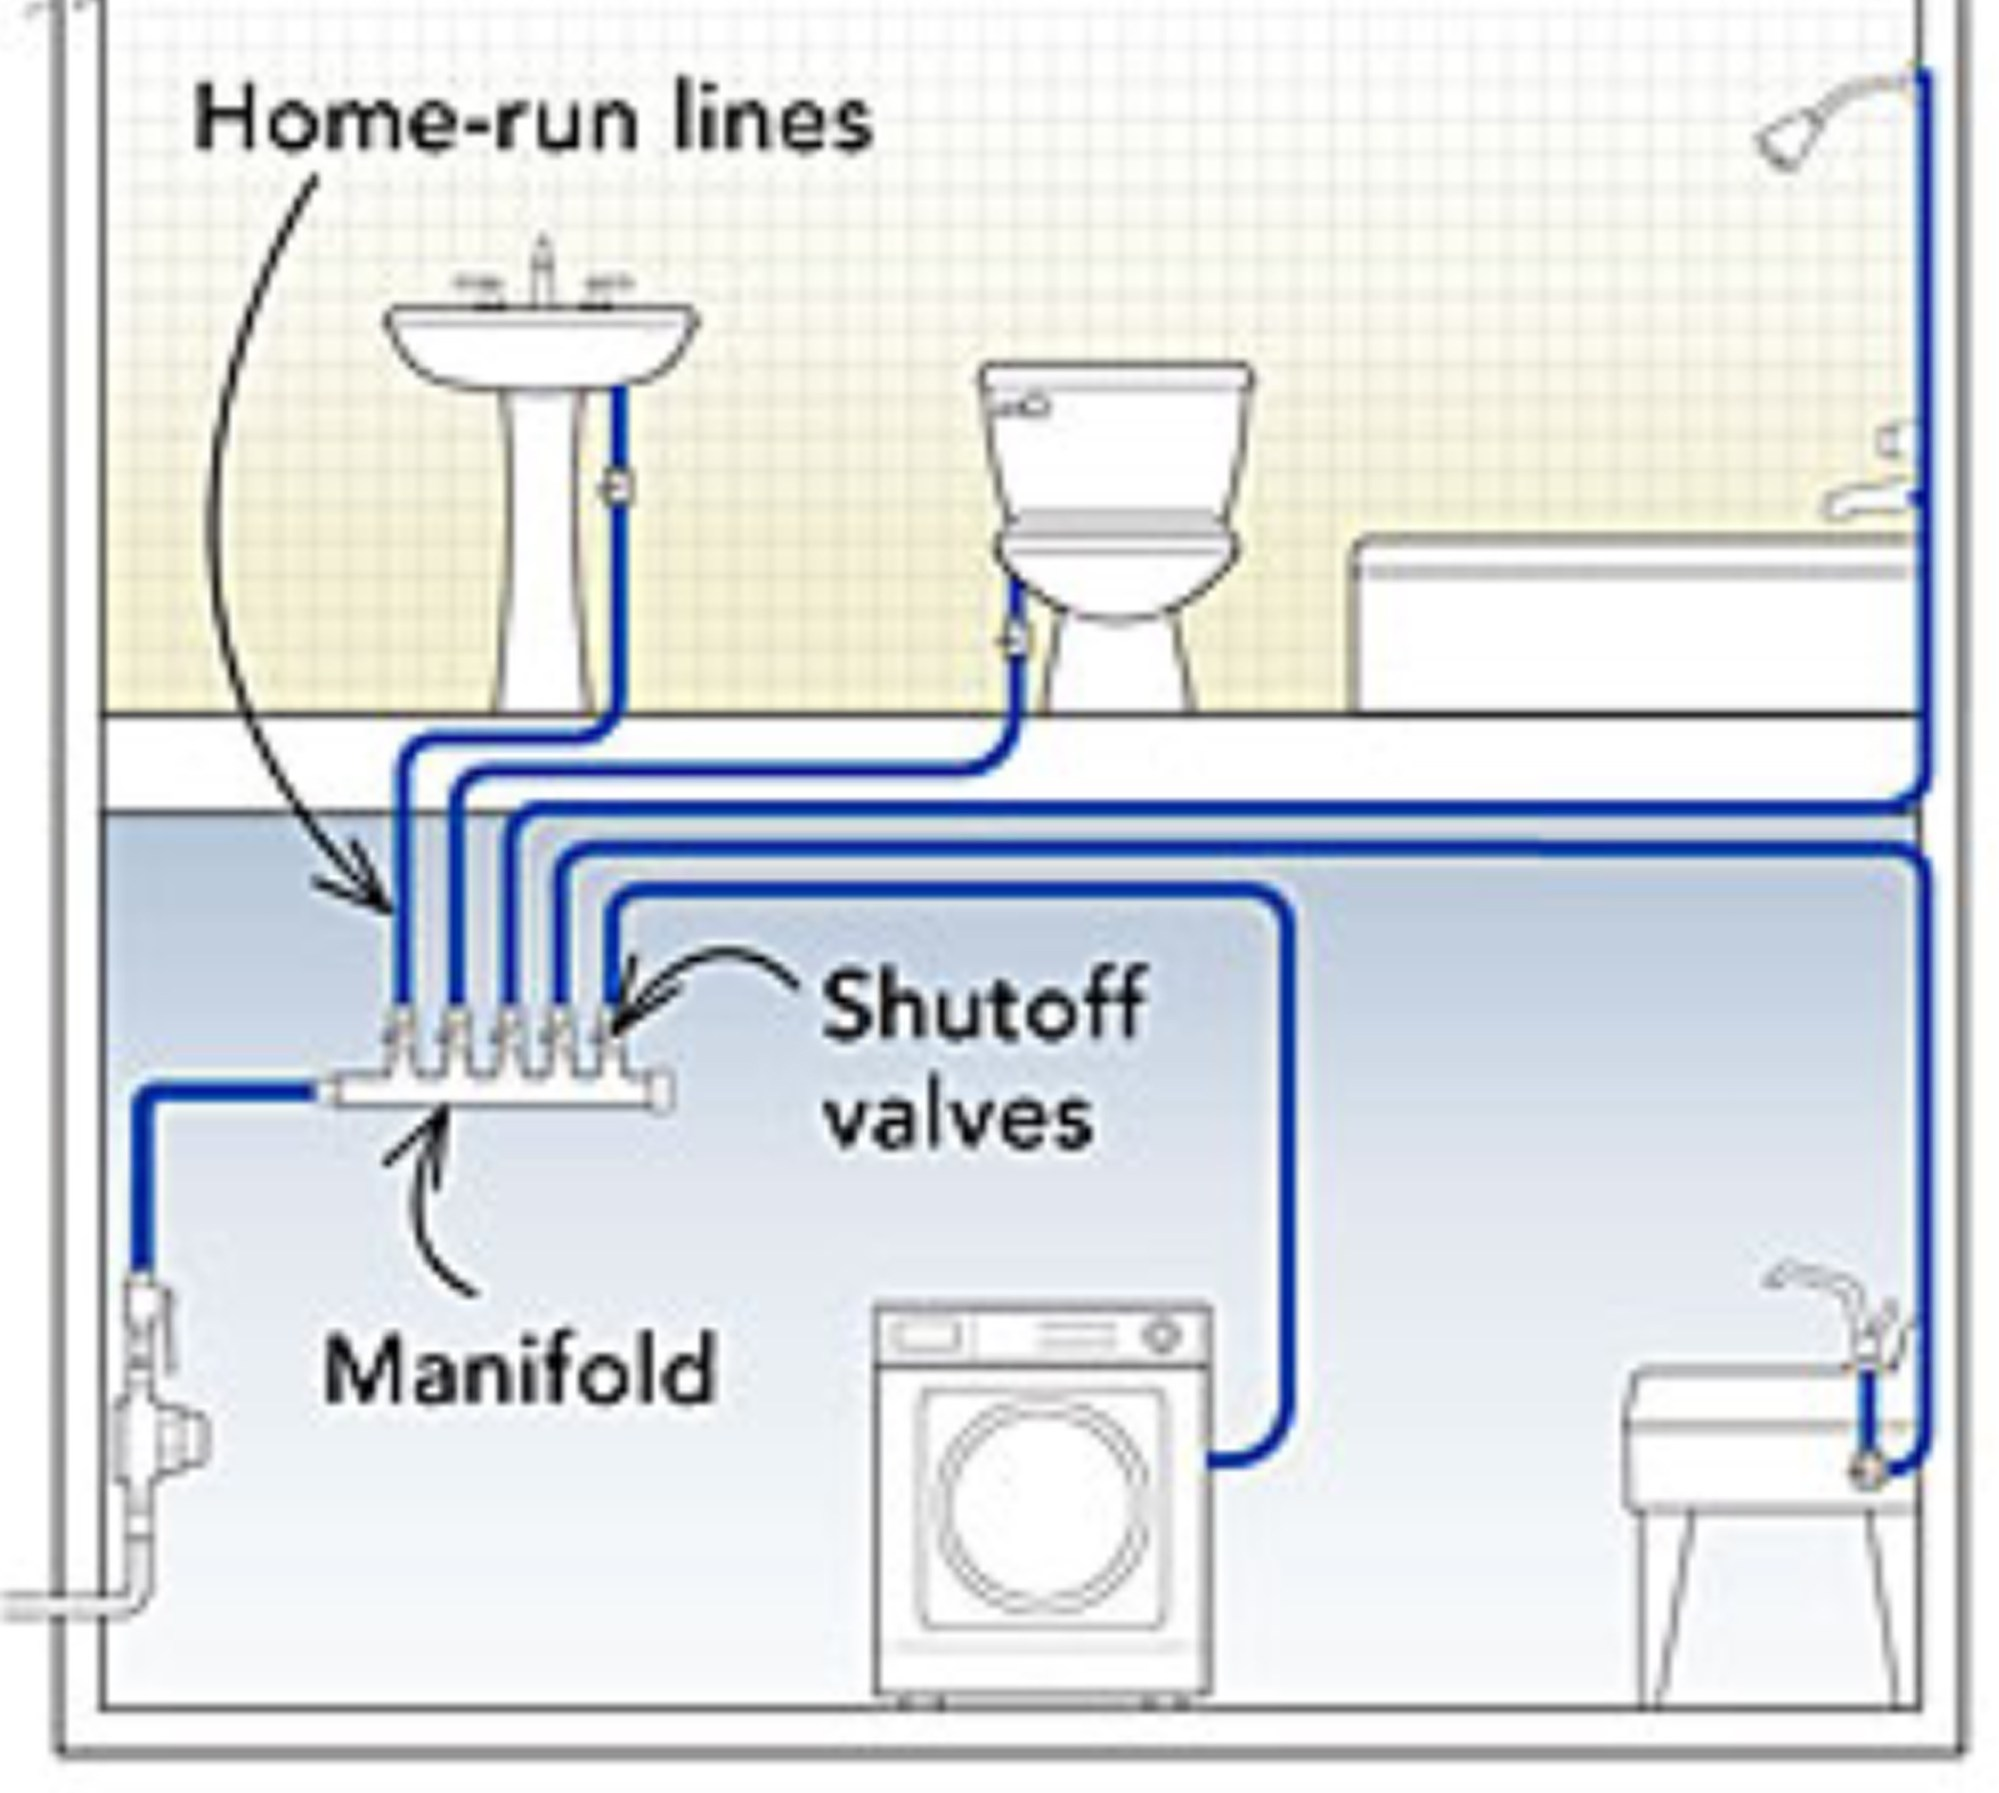 hight resolution of home run systems utilizes use of manifolds fixtures are fed from dedicated piping that runs directly and unbroken from central manifolds pex tubing